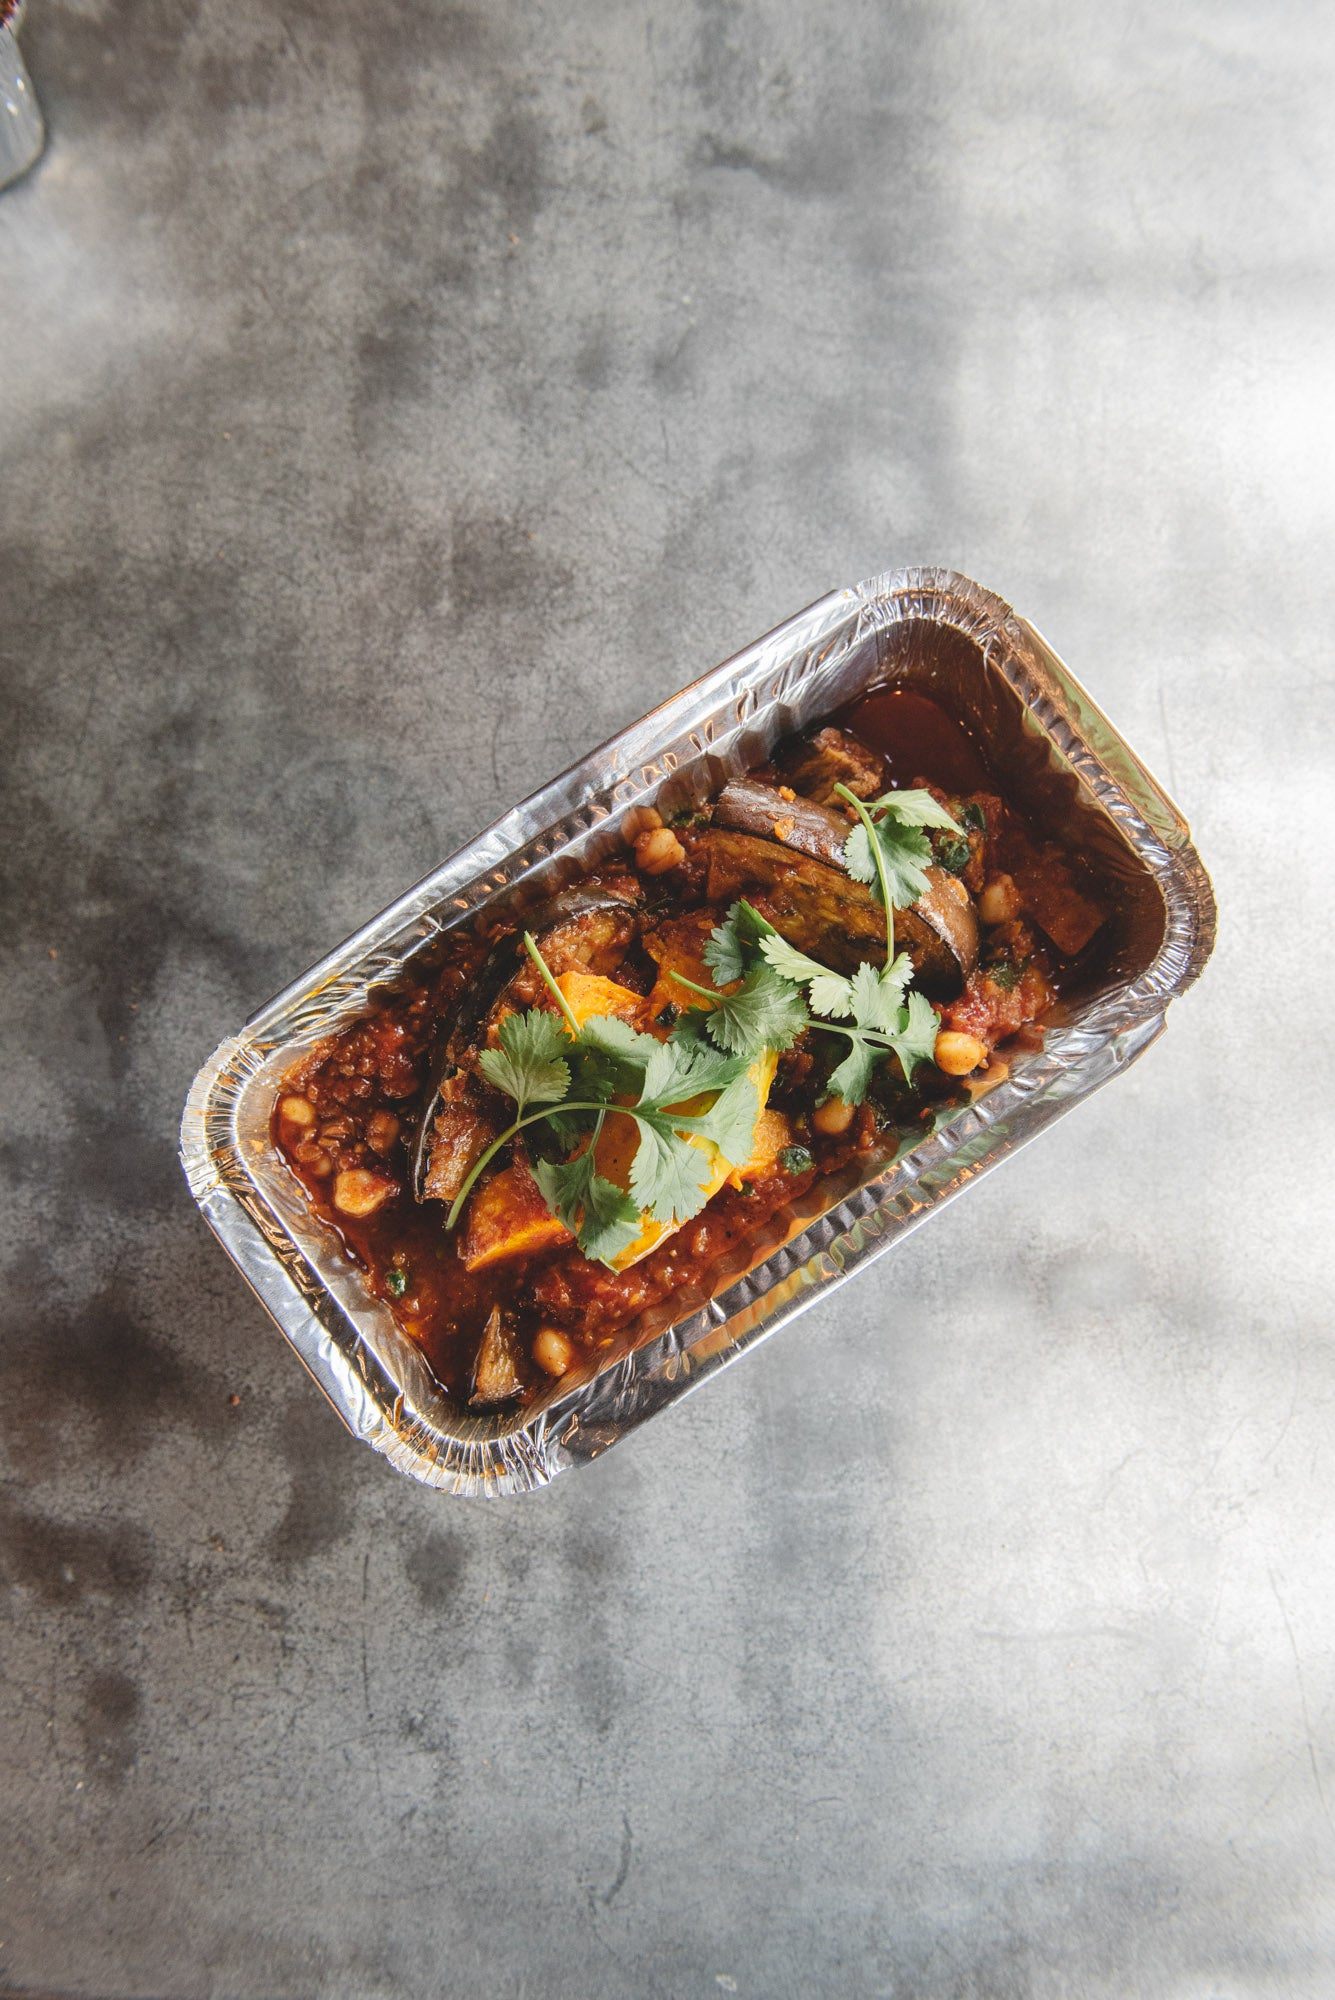 *NEW* Natasha Corrett's Indian fenugreek & aubergine Curry